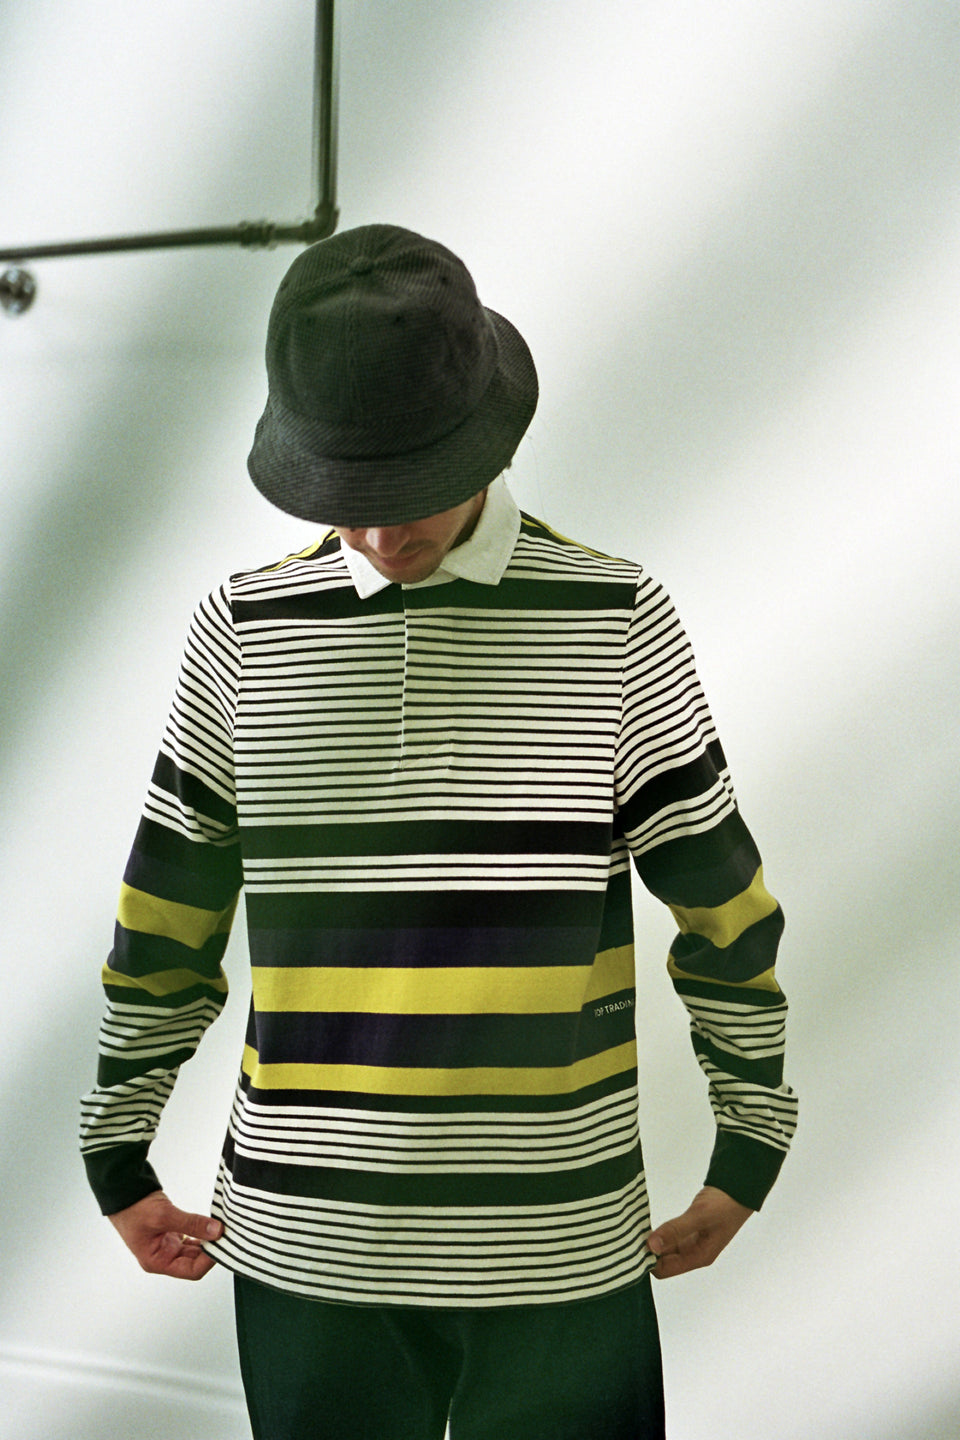 Pop Trading Company AW20 FW20 Striped Rugby Polo Multicolor Calculus Victoria BC Canada